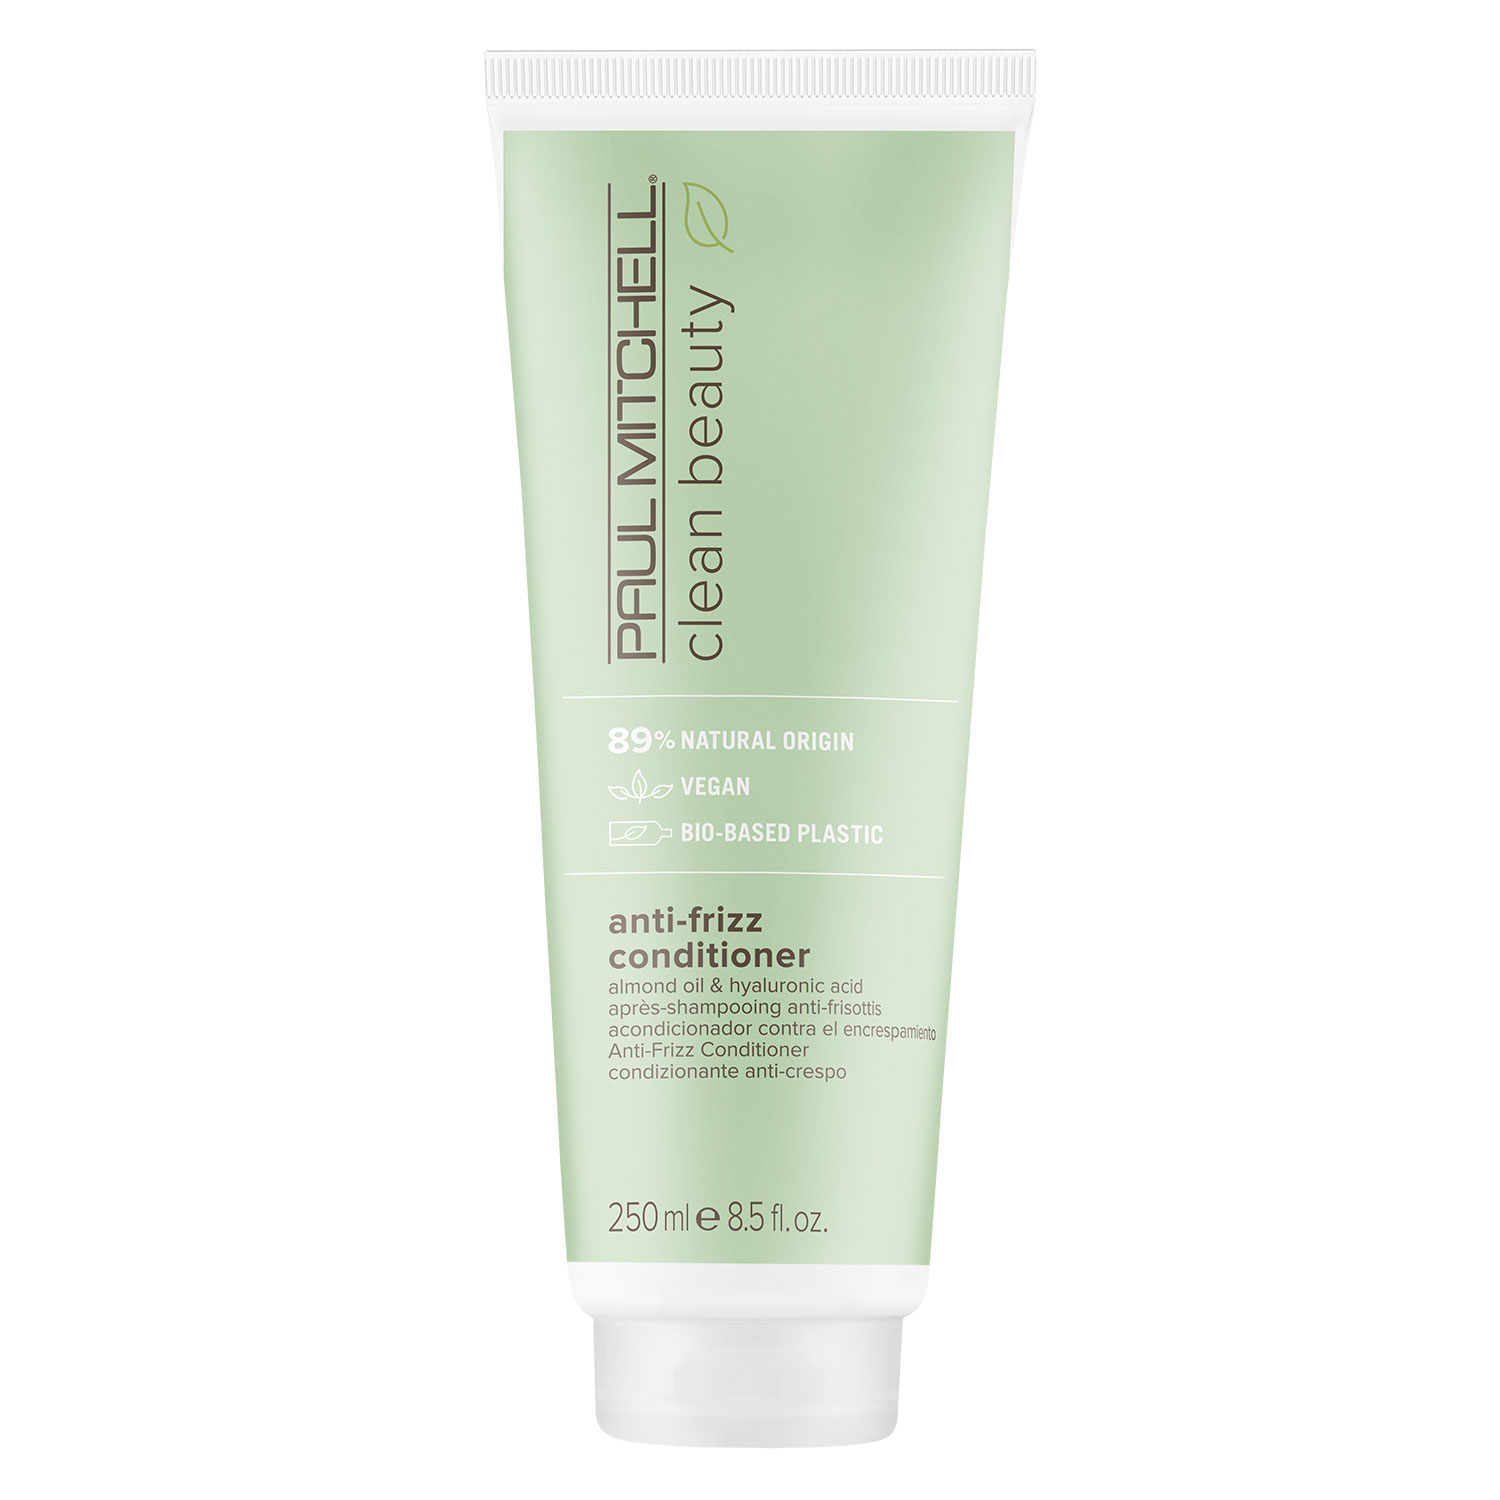 Paul Mitchell Clean Beauty - Anti-Frizz Conditioner